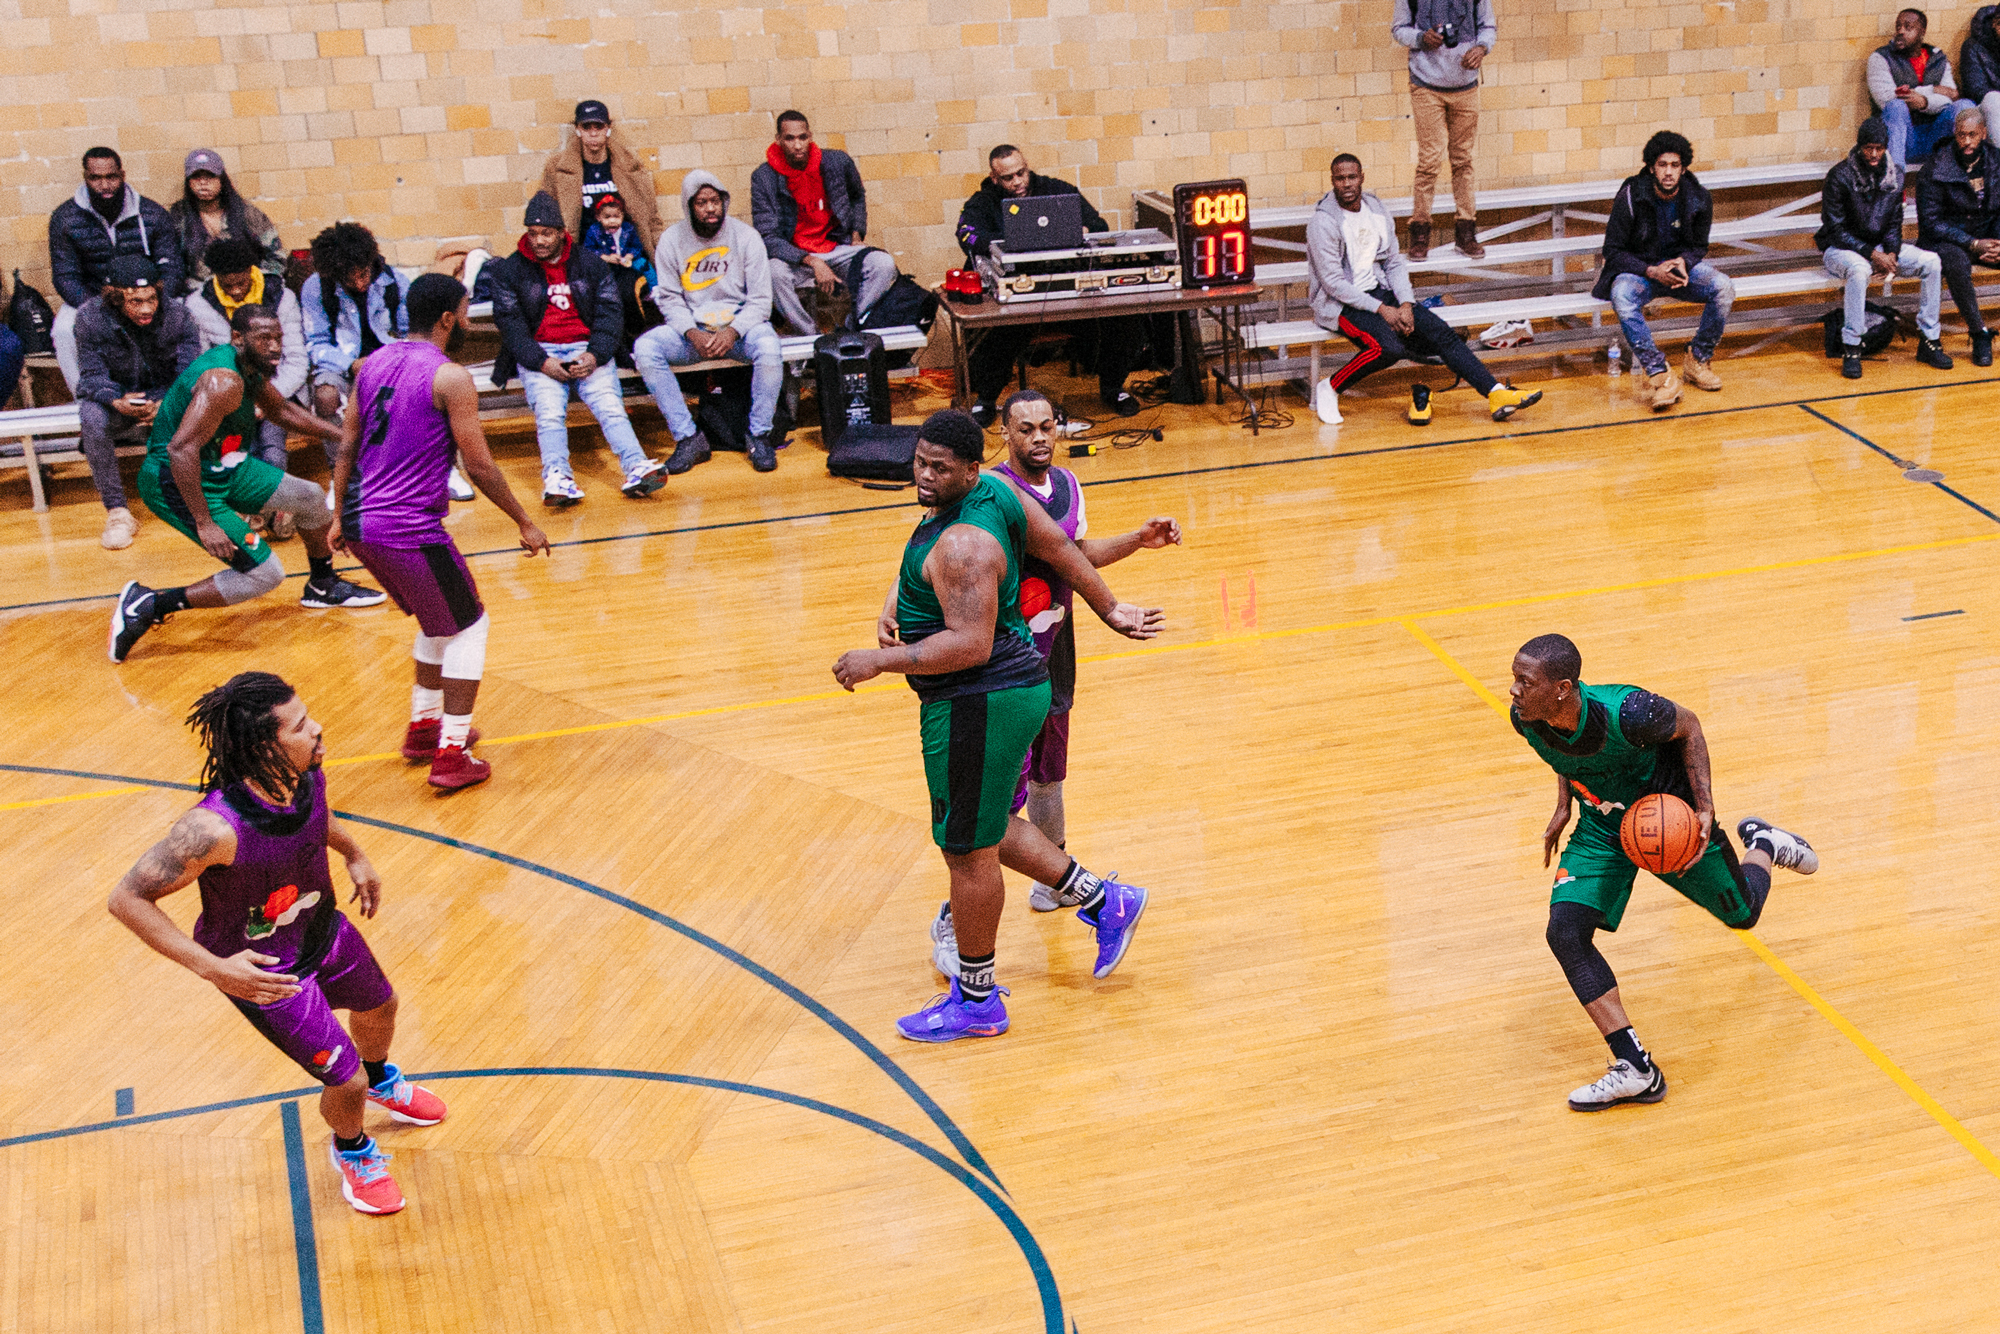 Players from the Lace Em Up League in Chicago.